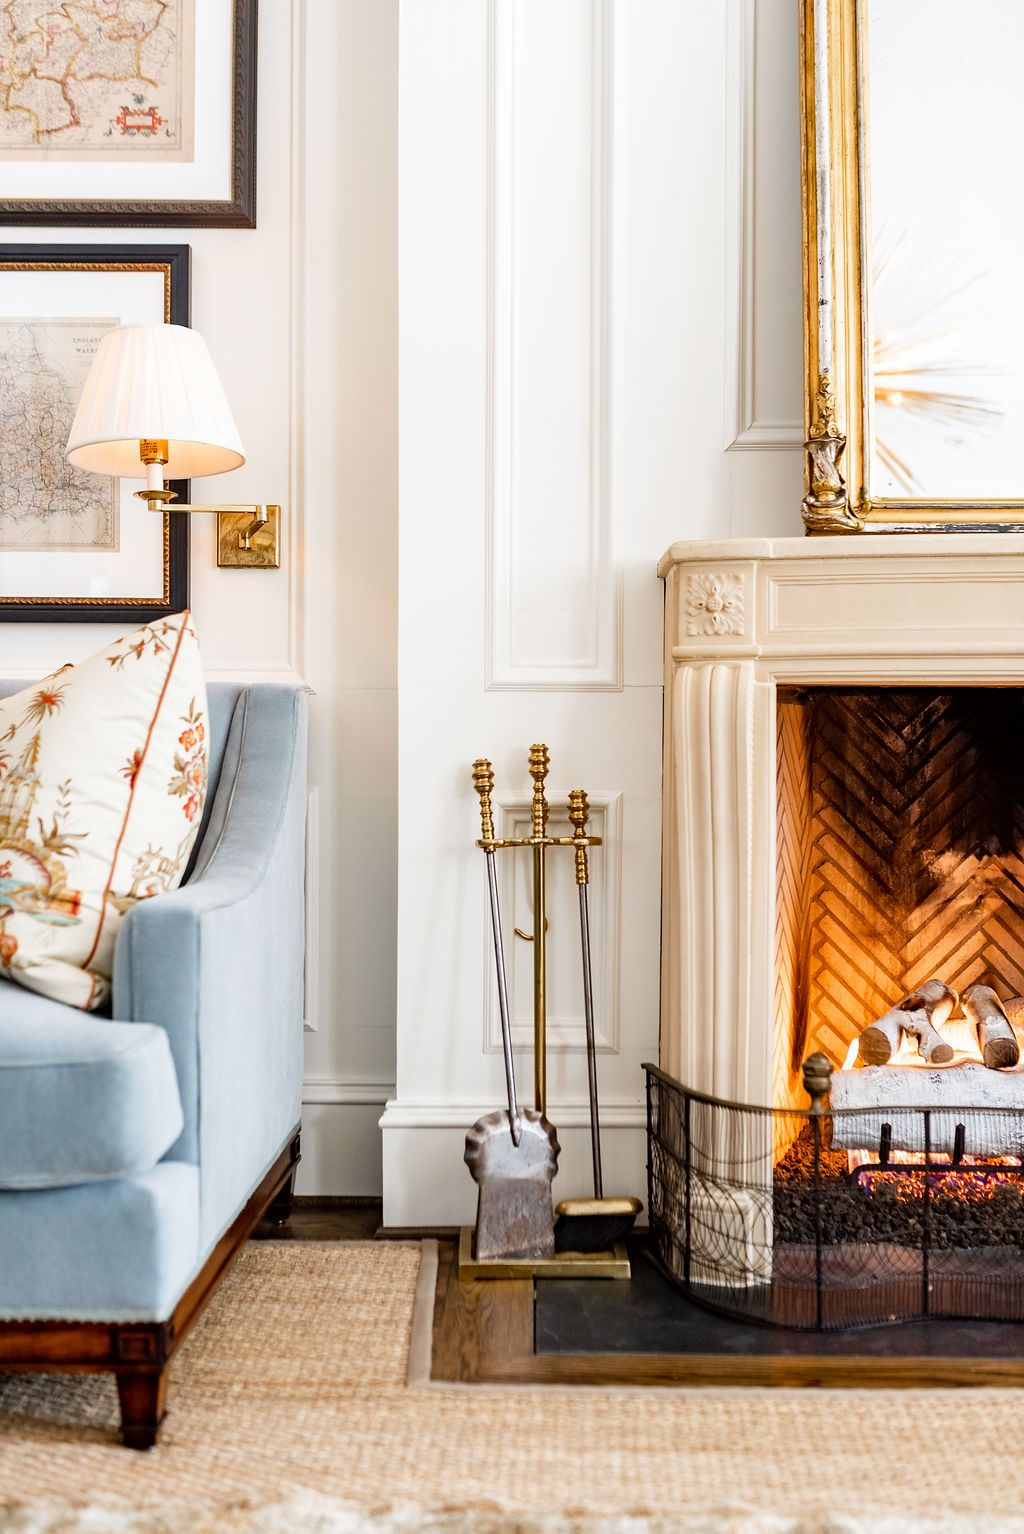 Transitional Living Room Style J Cathell In 2020 Transitional Living Rooms Living Room Style Home Decor Styles #transitional #living #room #decor